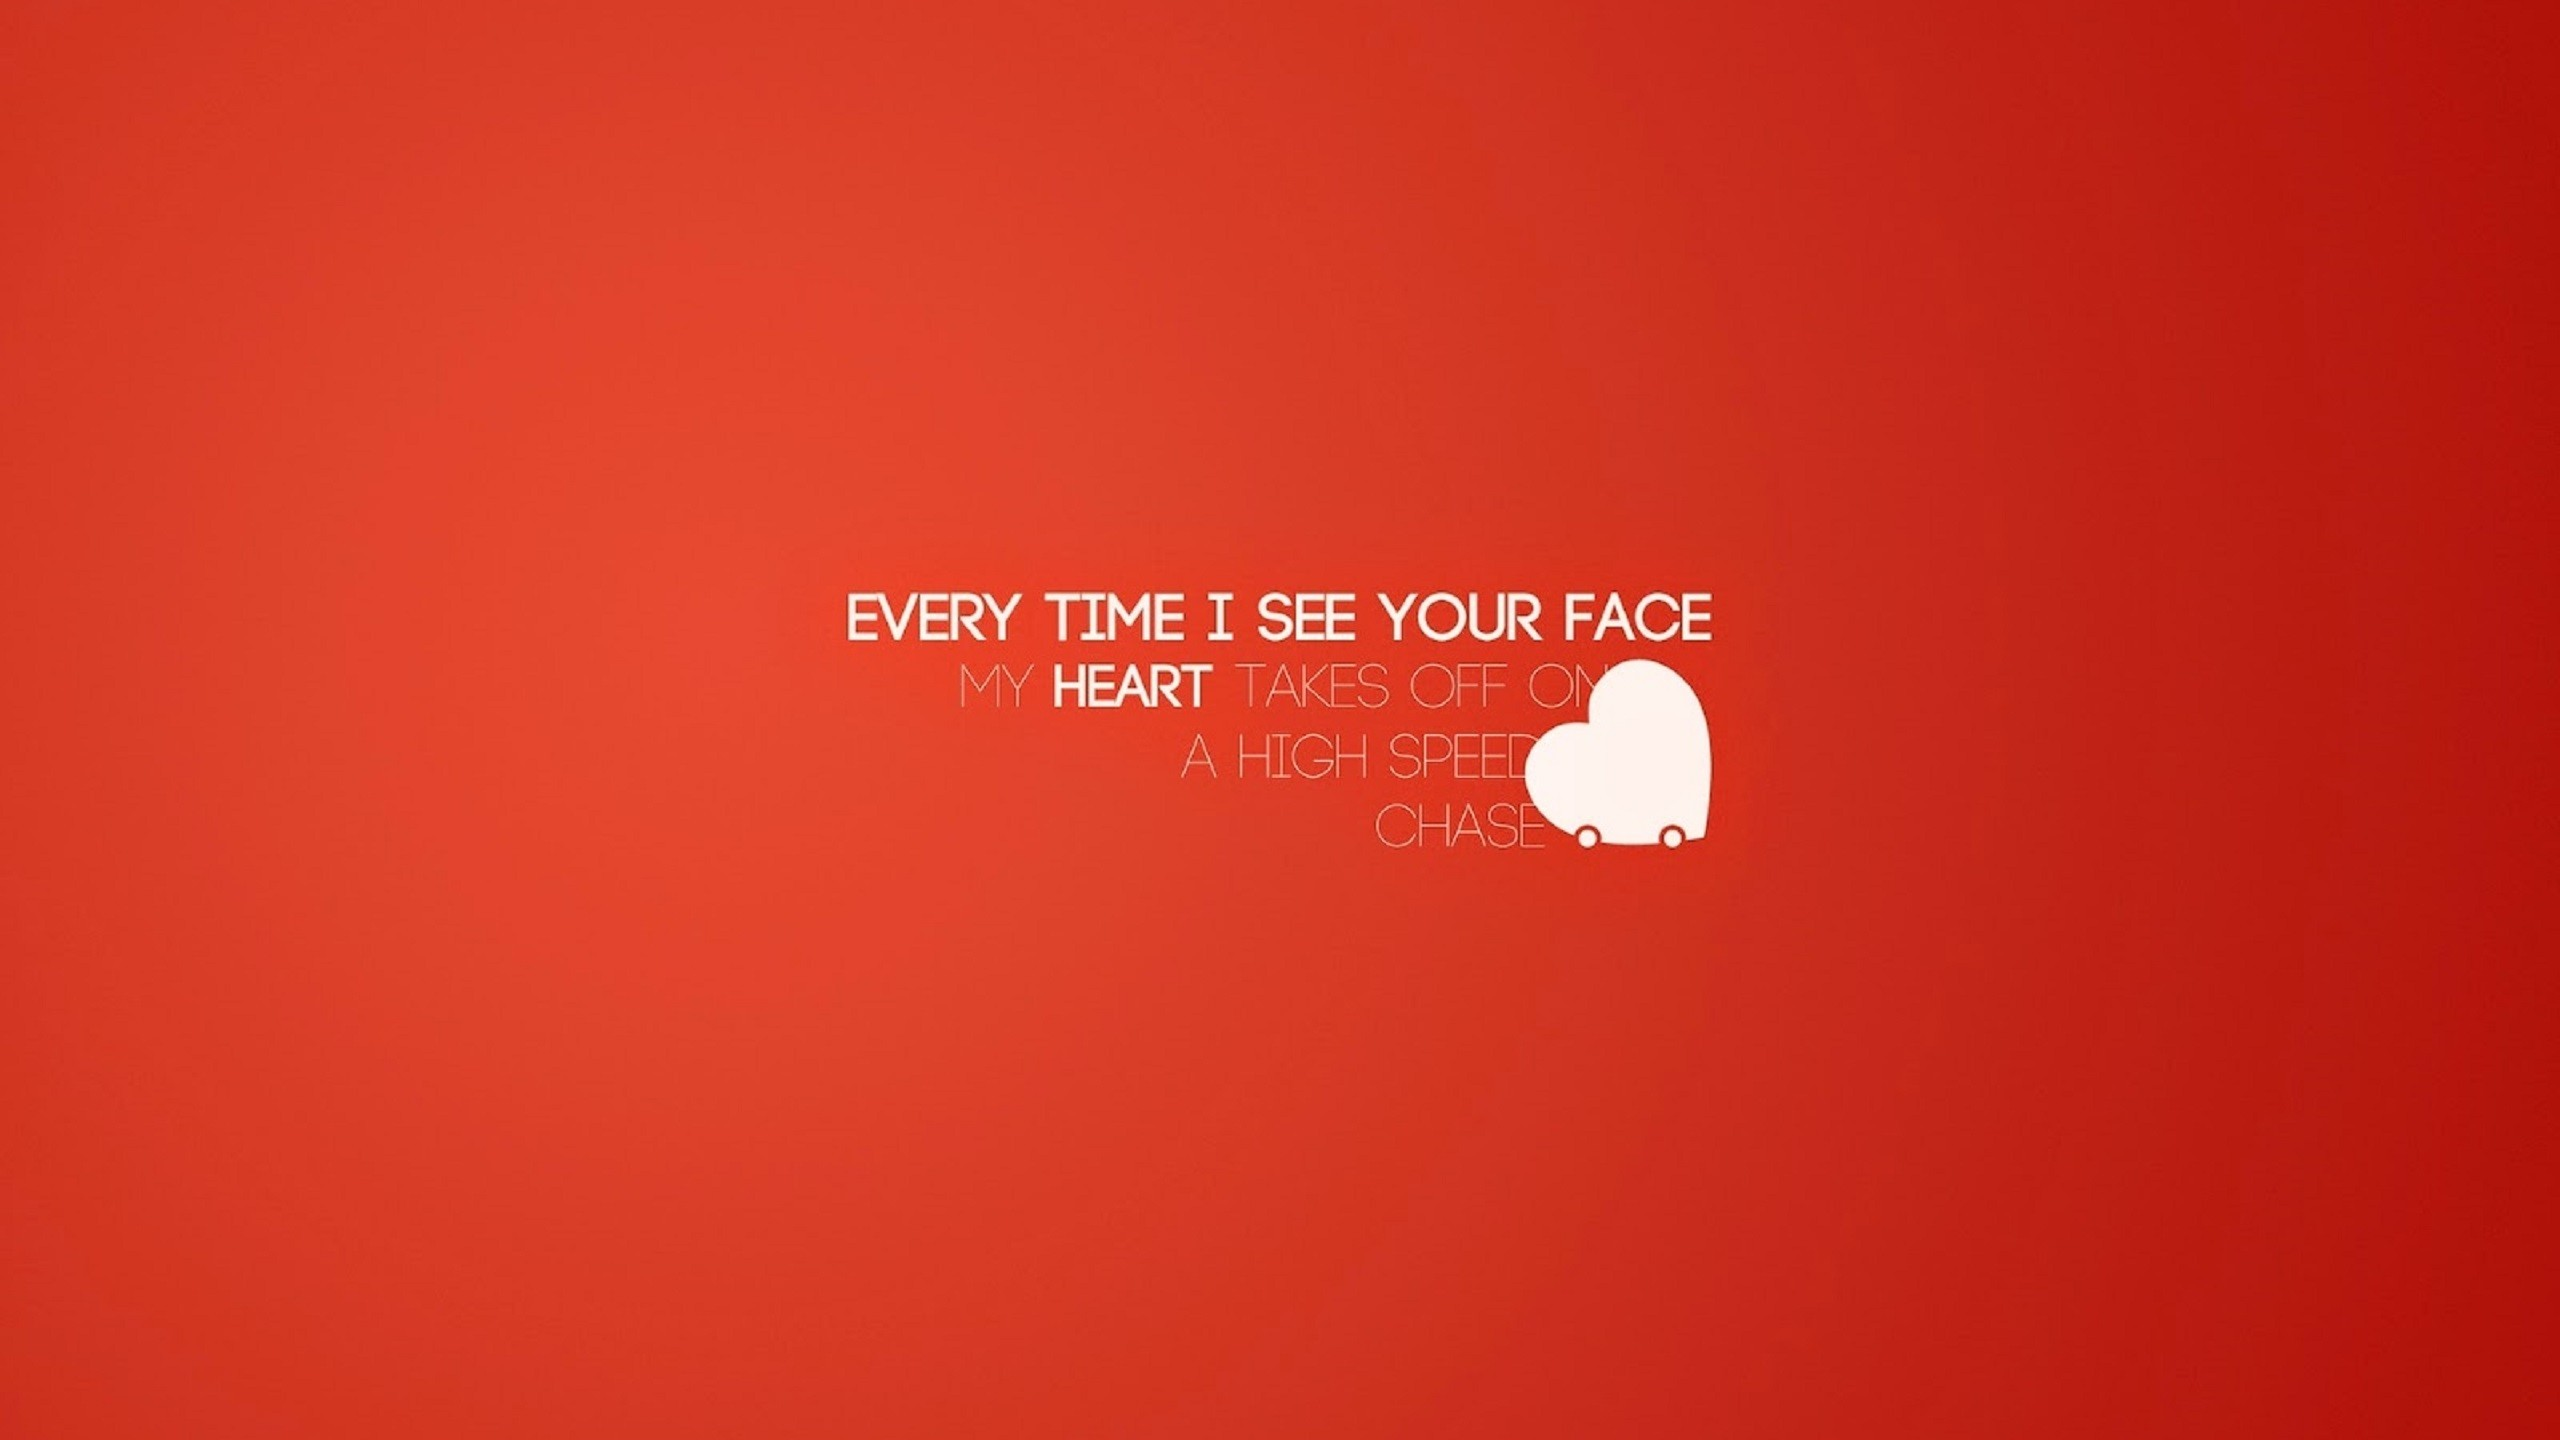 True love Quotation Wallpaper